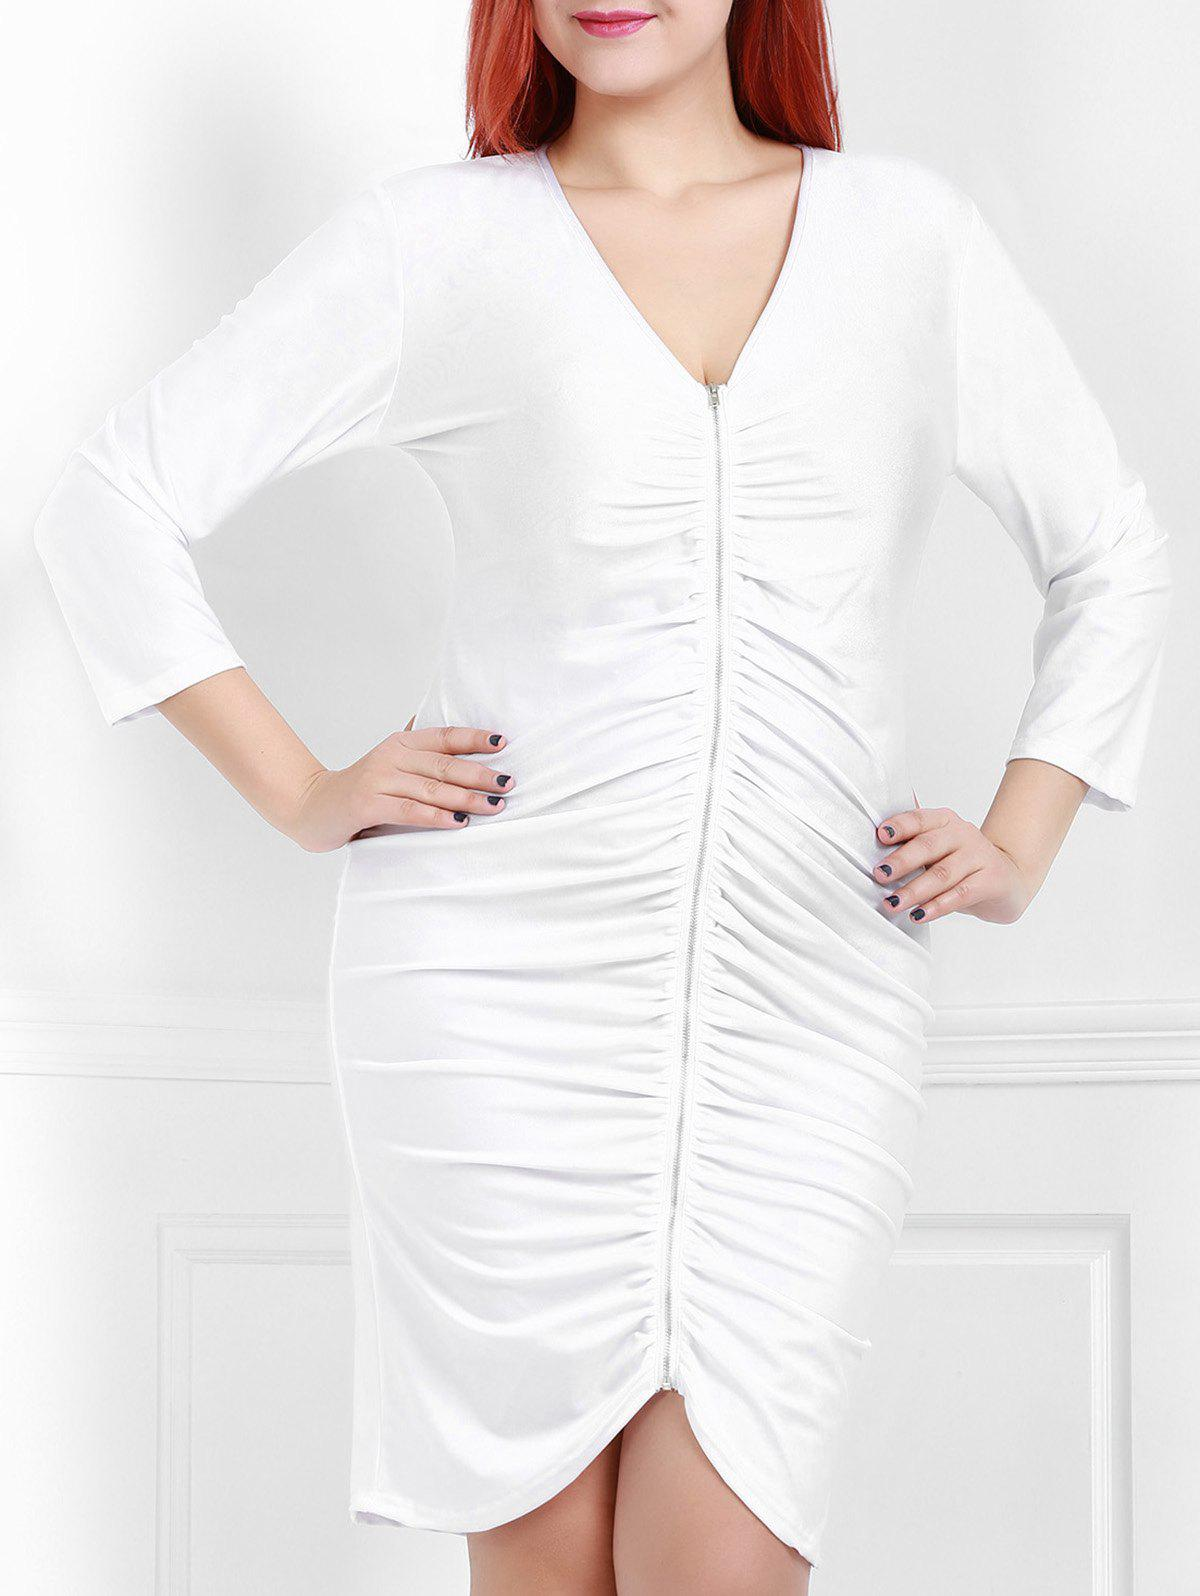 Sexy White Plunging Neck 3/4 Sleeve Dress For Women